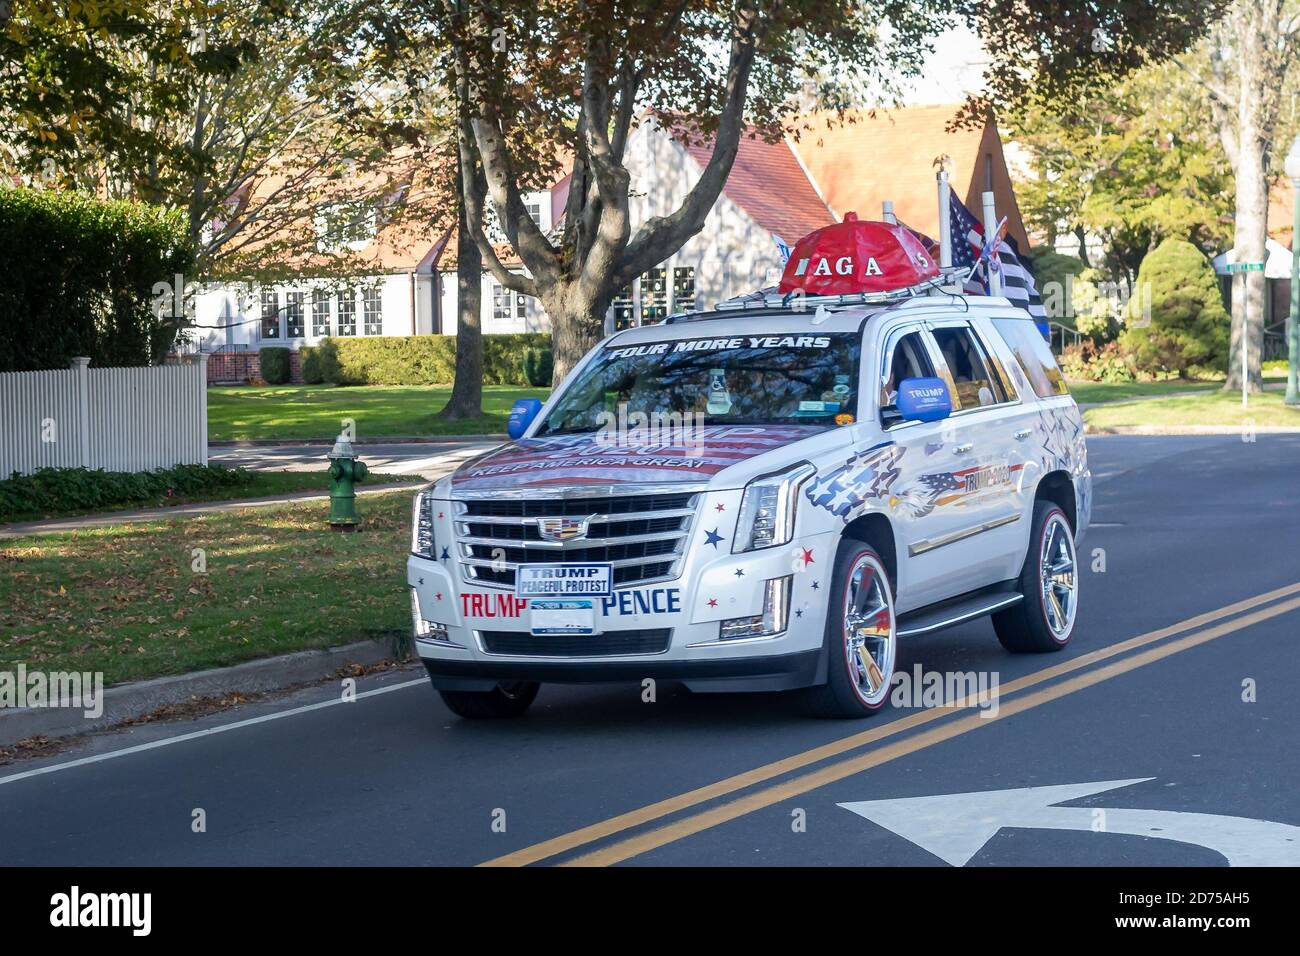 Flags, signage, and various political products reveal America's contentious allegiances leading up to the 2020 Presidential election. (Photo by Michael Nigro/Sipa USA) Credit: Sipa USA/Alamy Live News Stock Photo